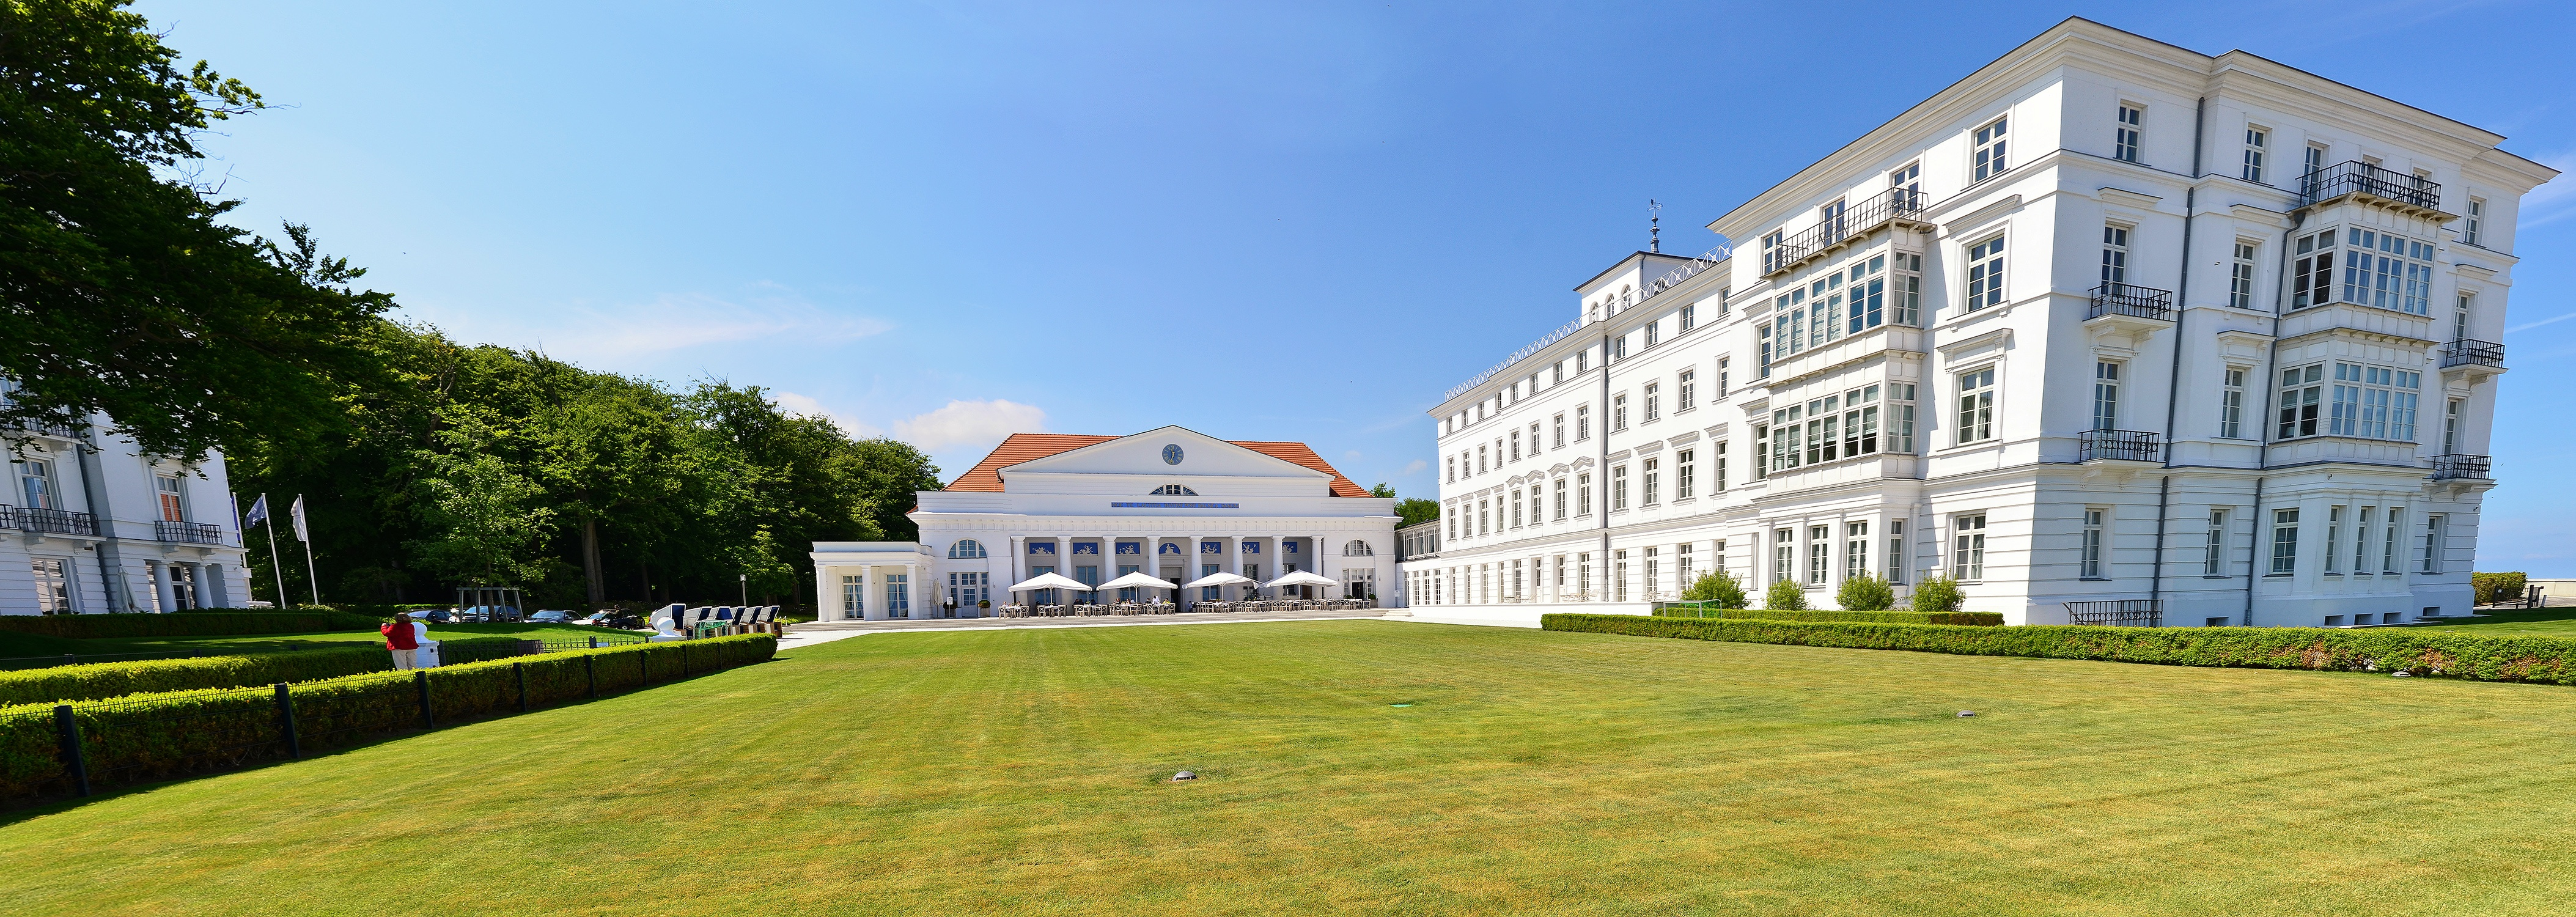 Grand Hotel Heiligendamm Bad Doberan